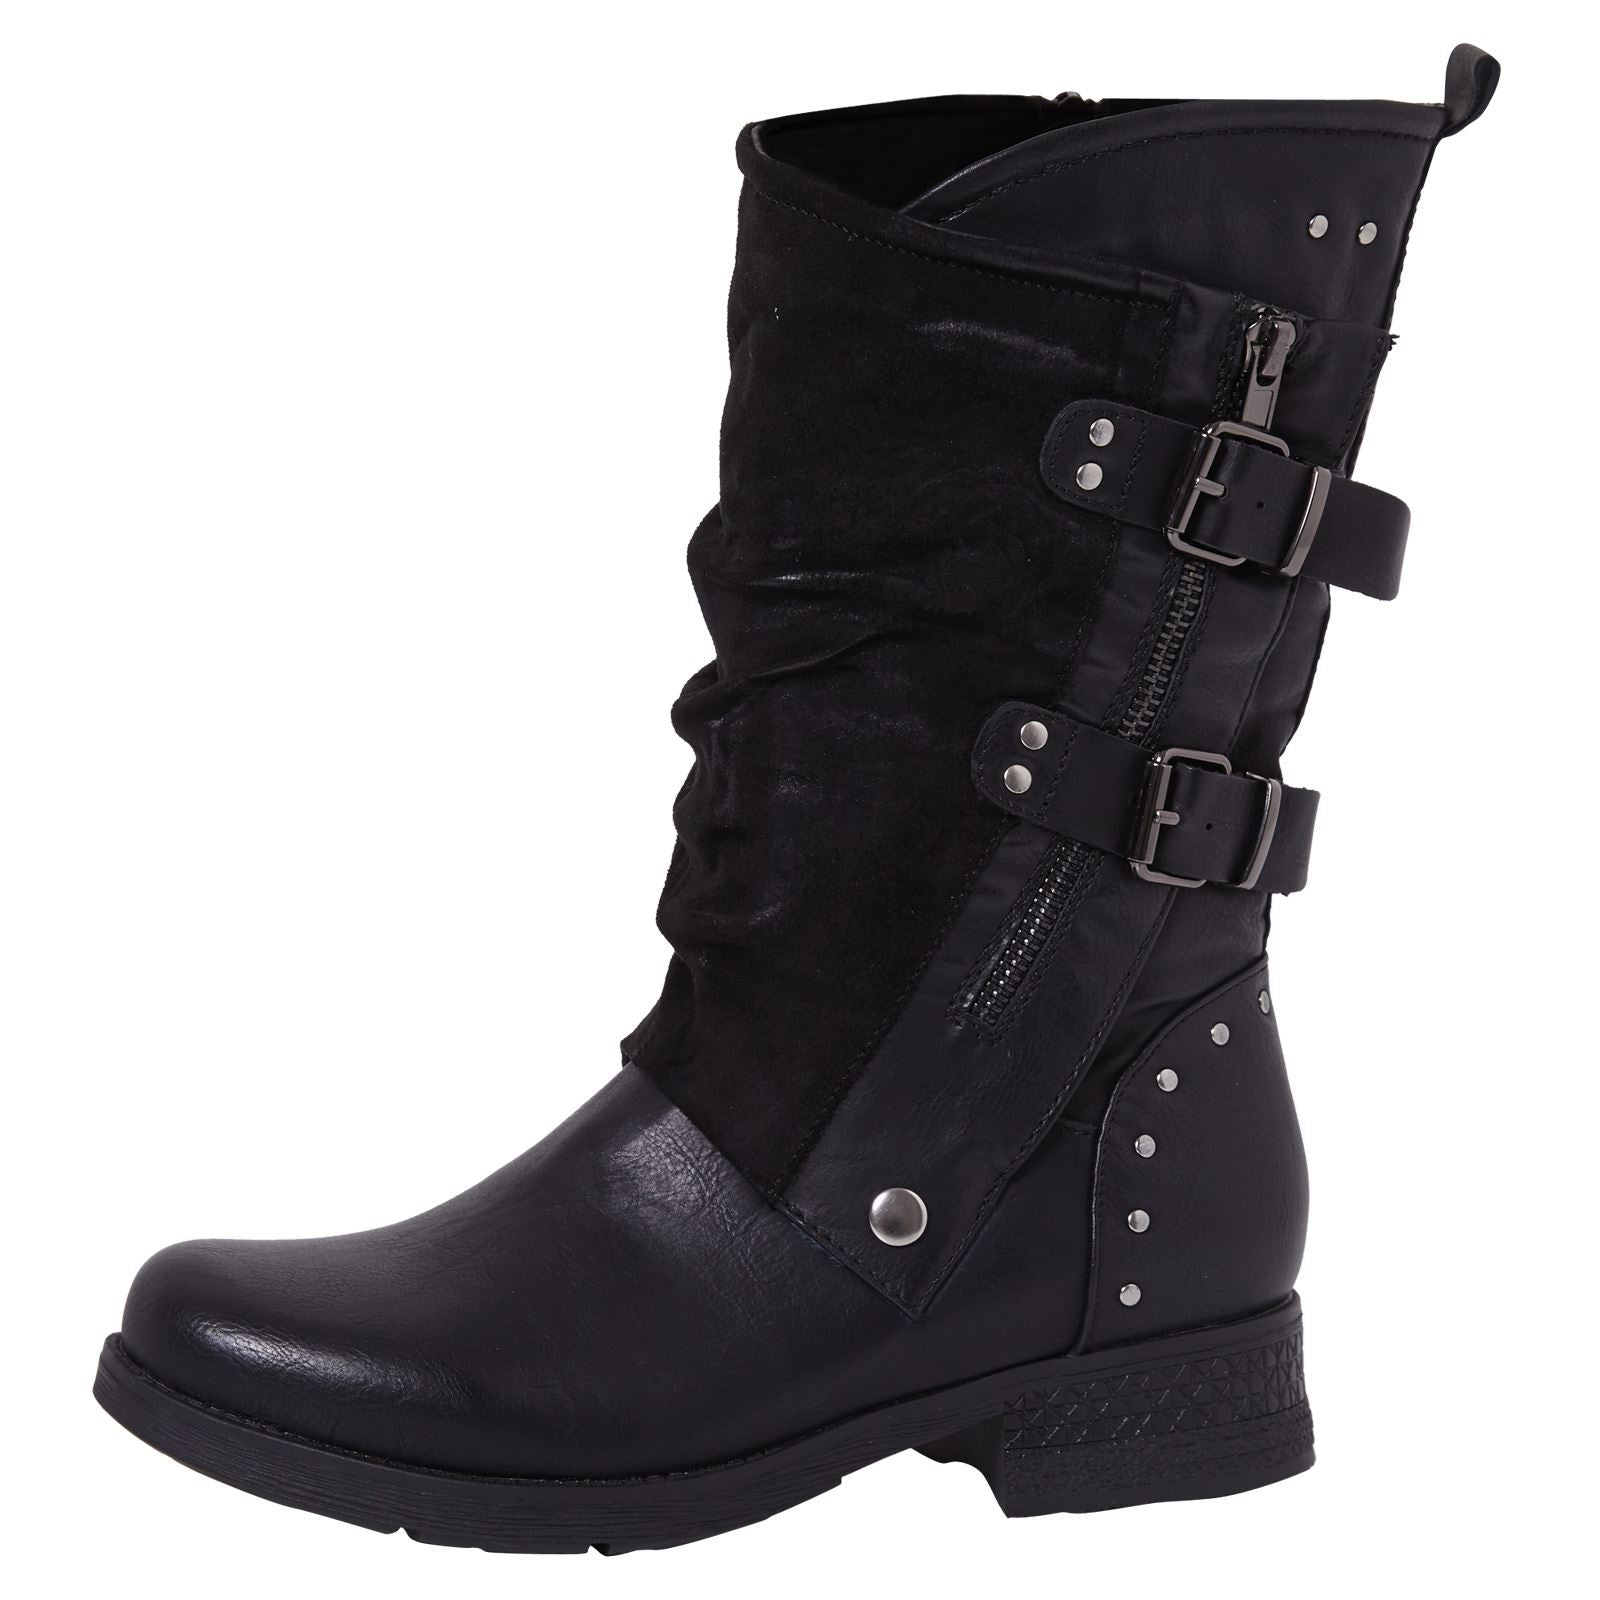 Aadhya Two Toned Mid Calf Boots in Black - Feet First Fashion